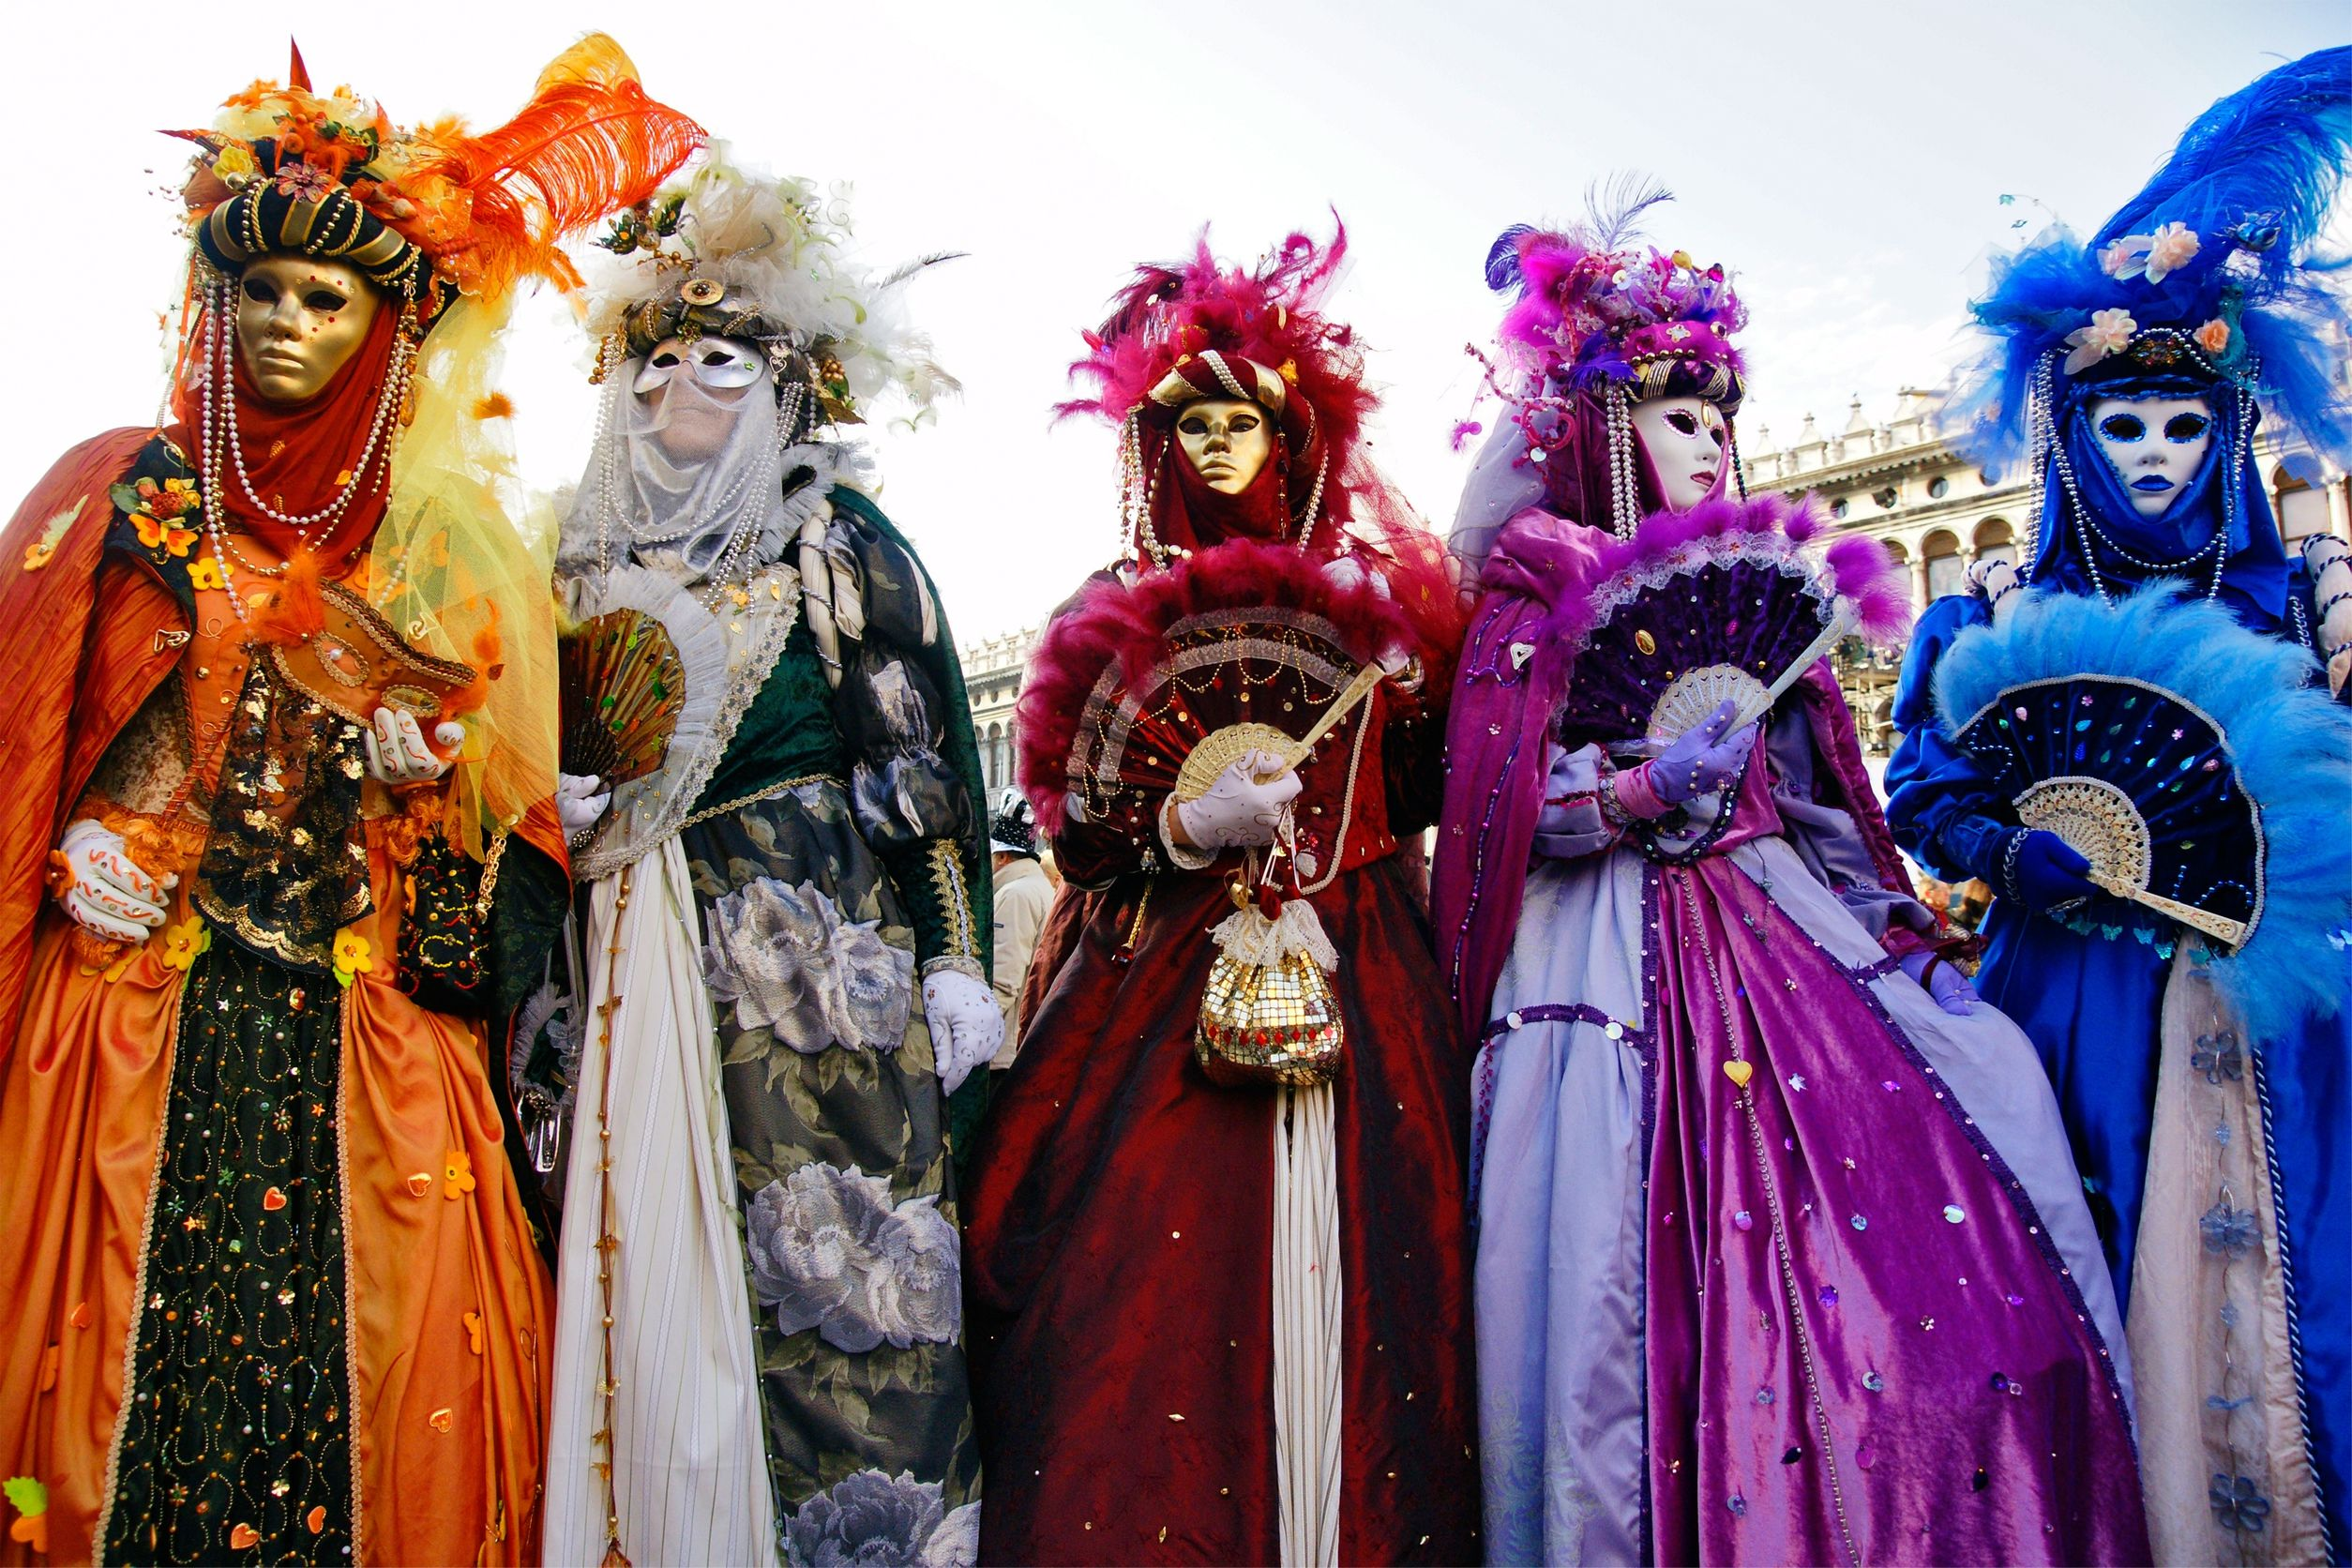 9075816 - group of masks in venice, italy.